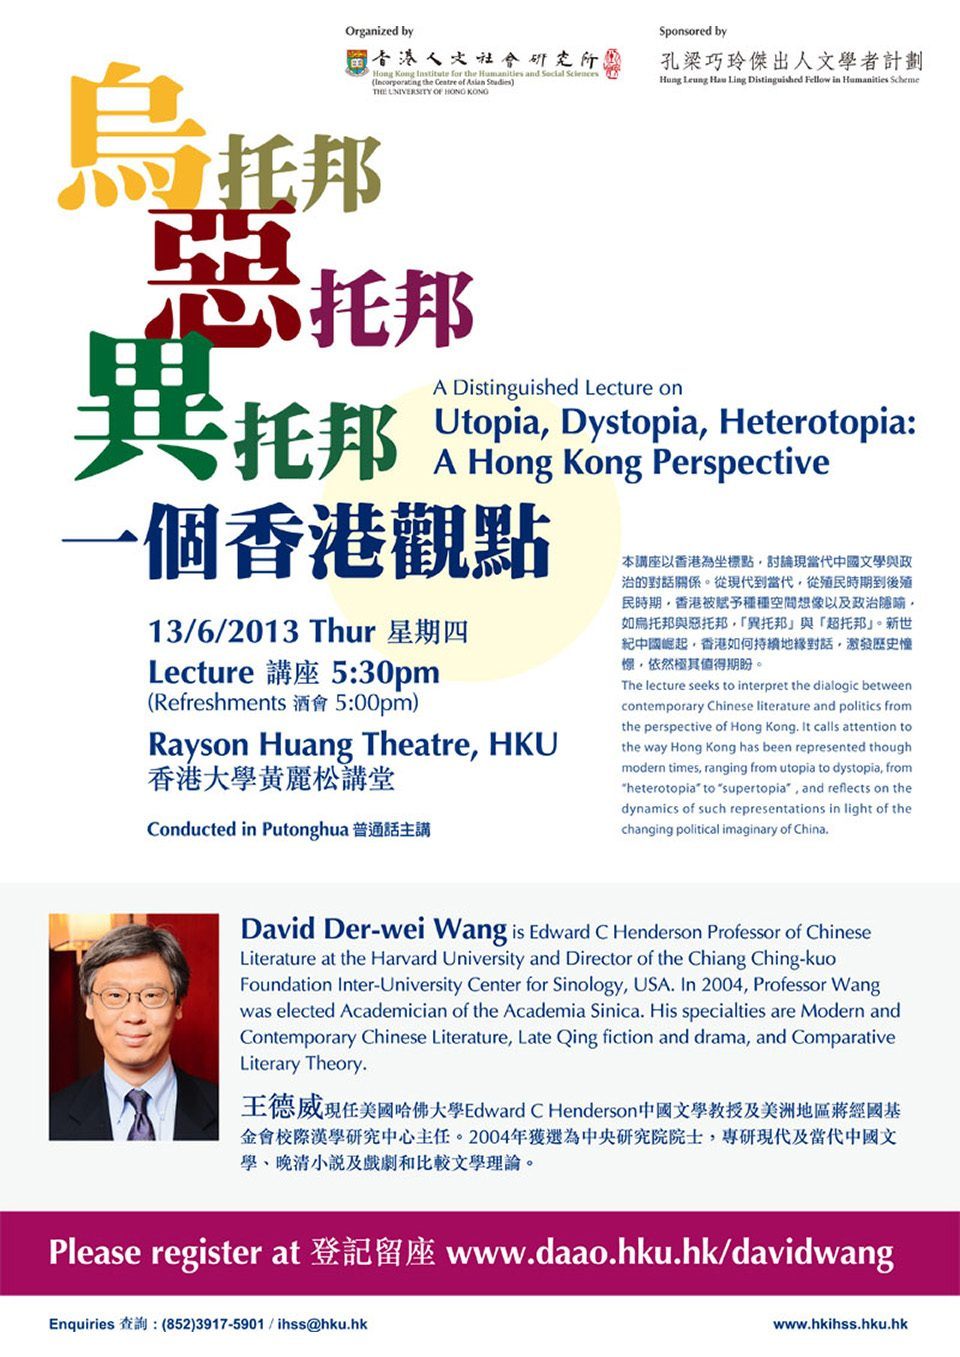 "Distinguished Lecture on ""Utopia, Dystopia, Heterotopia: A Hong Kong Perspective (烏托邦,惡托邦,異托邦: 一個香港觀點)"" By Professor David Der-wei Wang (June 13, 2013)"